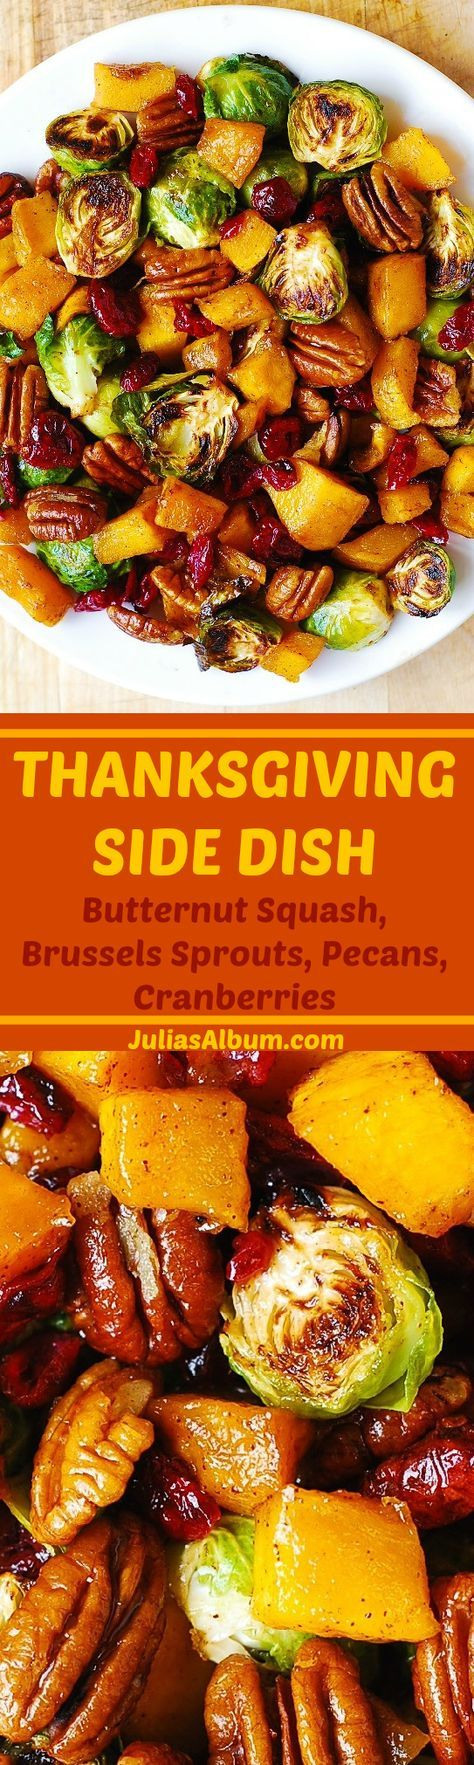 Thanksgiving Side Dish: Roasted Brussels Sprouts; Butternut Squash glazed with Cinnamon & Maple Syrup; Pecans & Cranberries. YUM! Healthy, vegetarian, gluten free Holiday Recipe. (Paleo Dressing Balsamic)